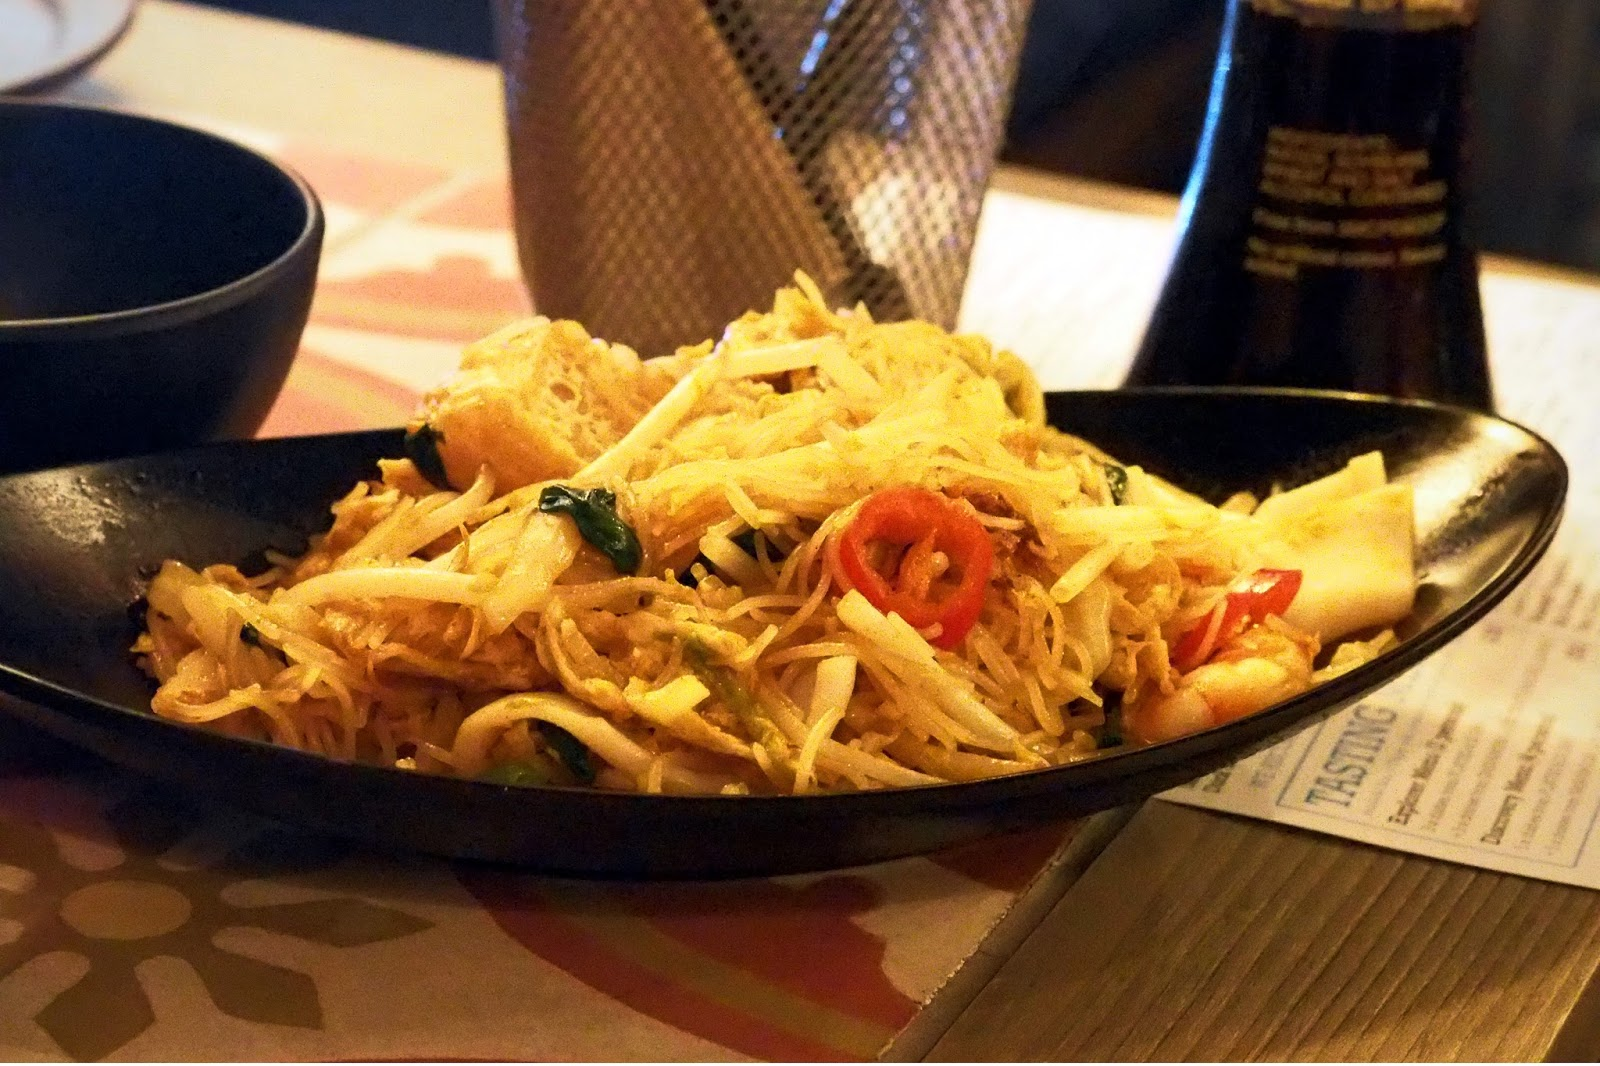 stirfried noodles in a bowl